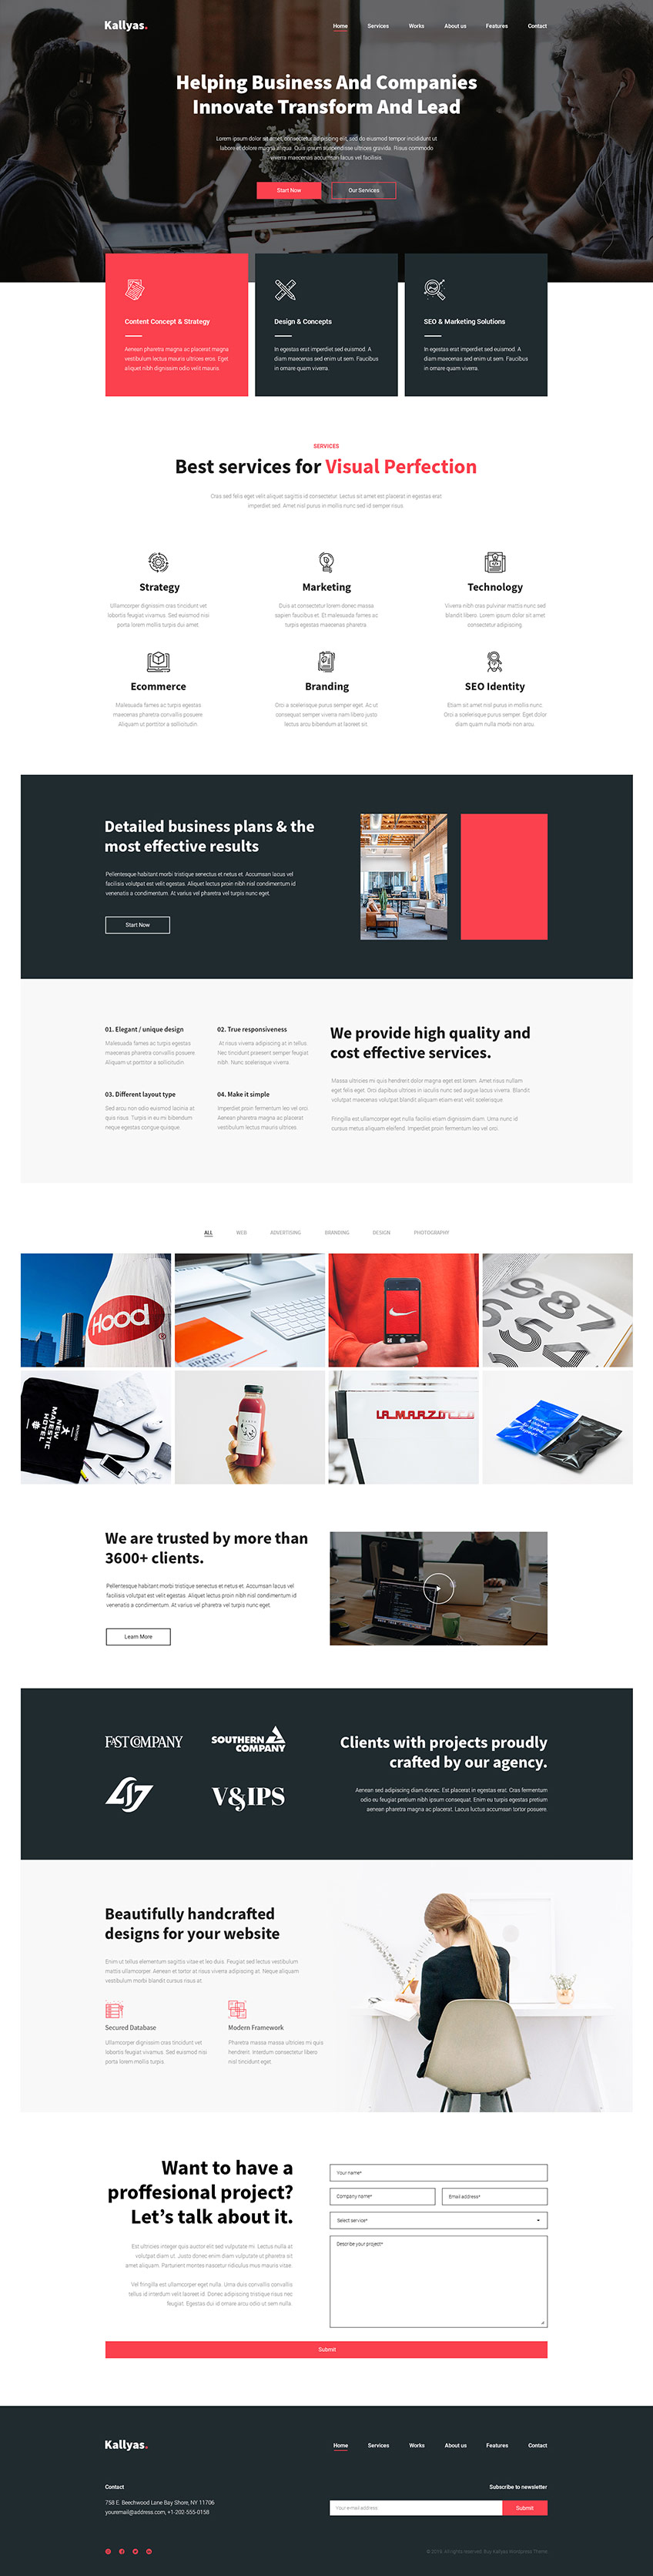 Business Agency - Free PSD Template